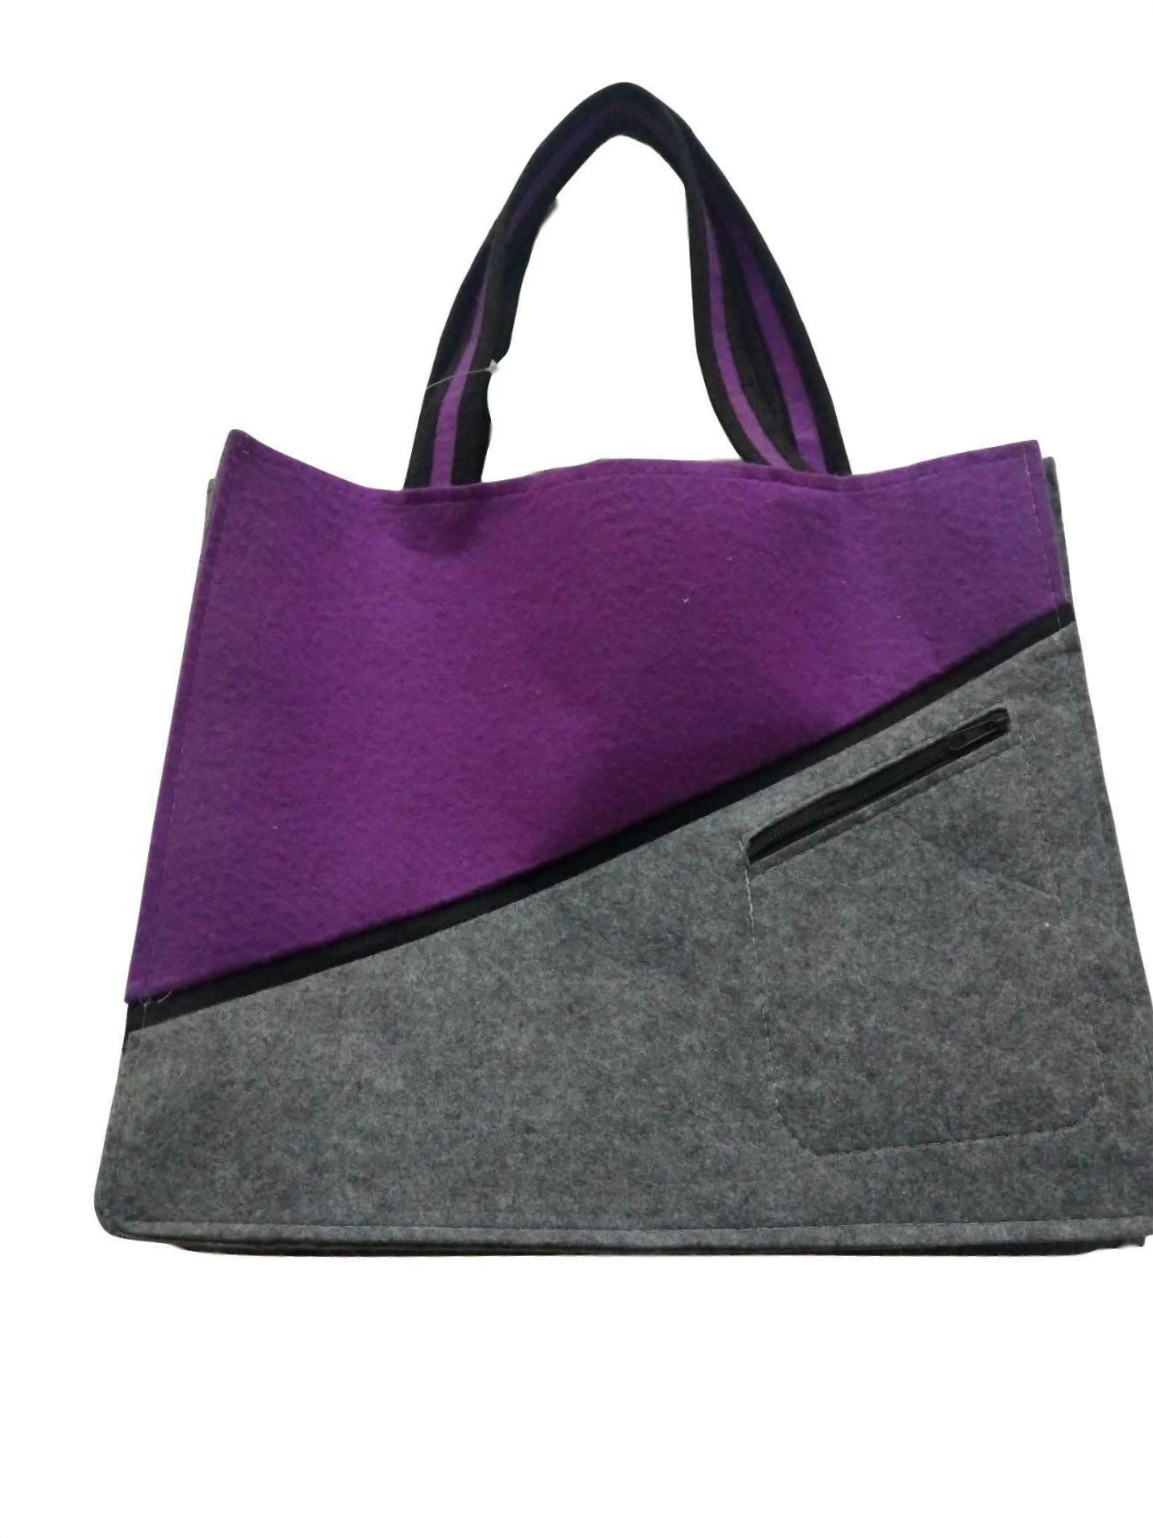 Wholesale Latest Design Reusable Fashion Felt Cloth Bag for shopping, Latest Design Reusable Fashion Felt Cloth Bag for shopping Manufacturers, Latest Design Reusable Fashion Felt Cloth Bag for shopping Producers